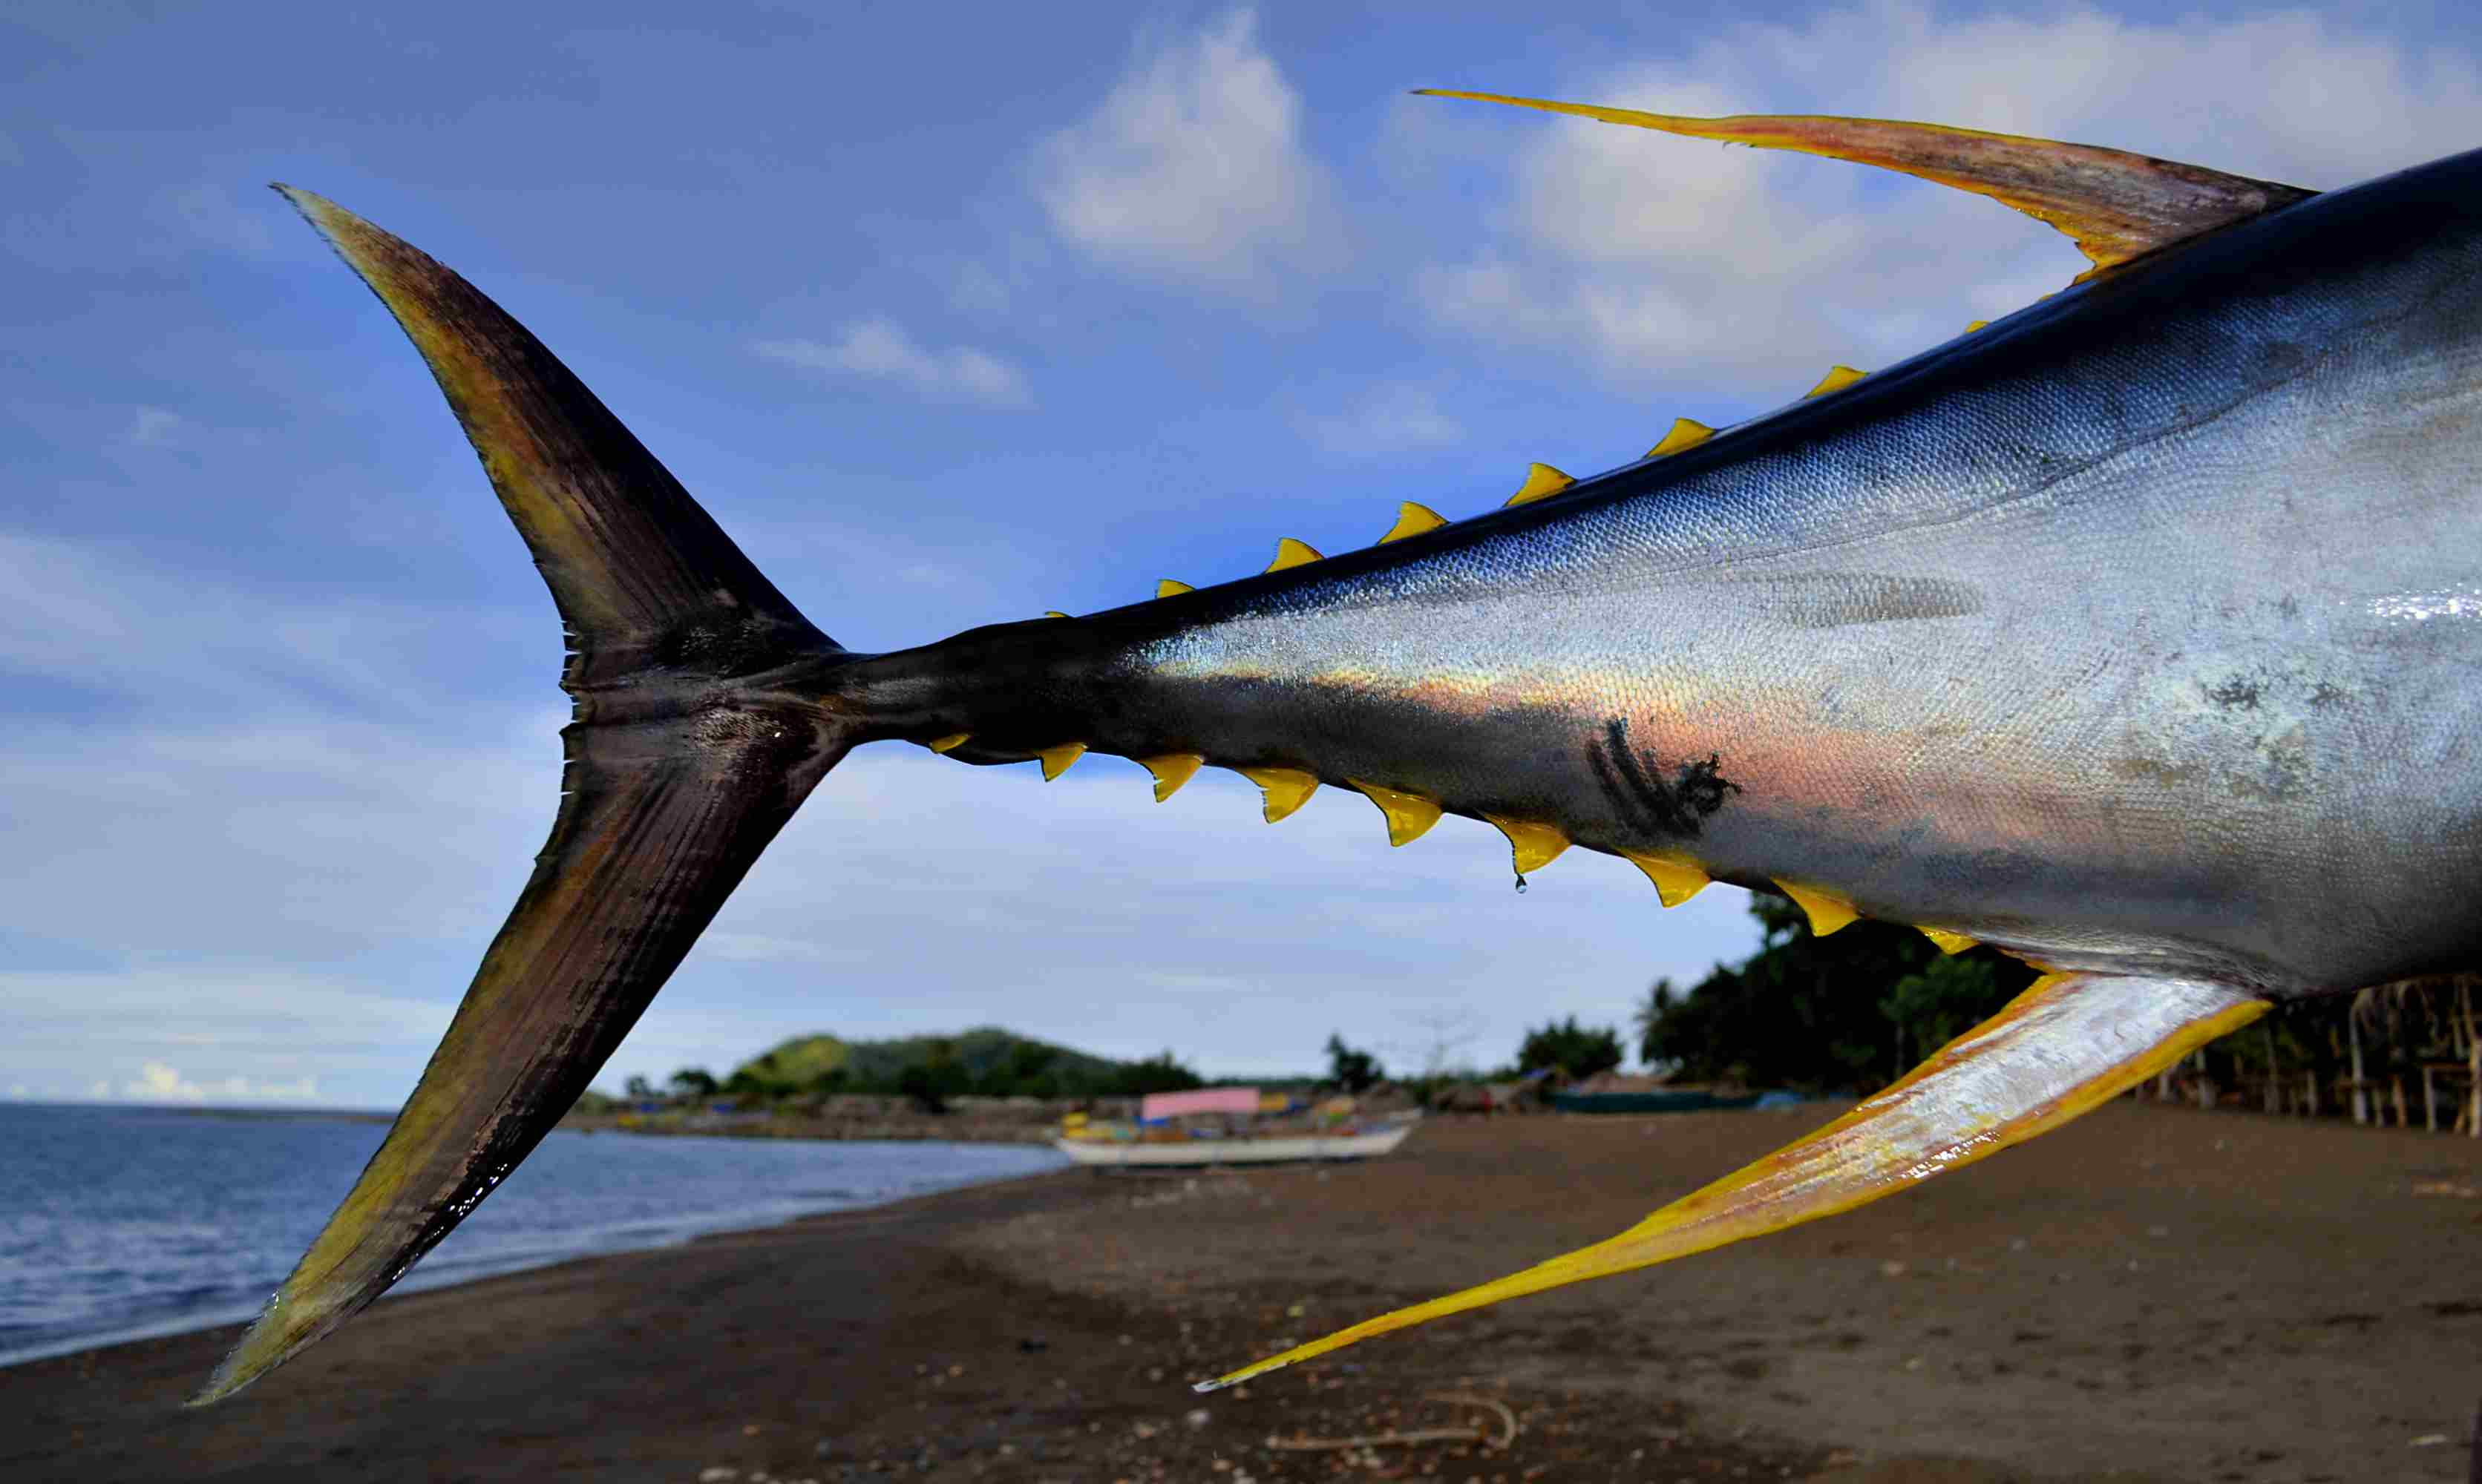 The yellowfin tuna has a sickle-shaped yellow tail and yellow finlets.